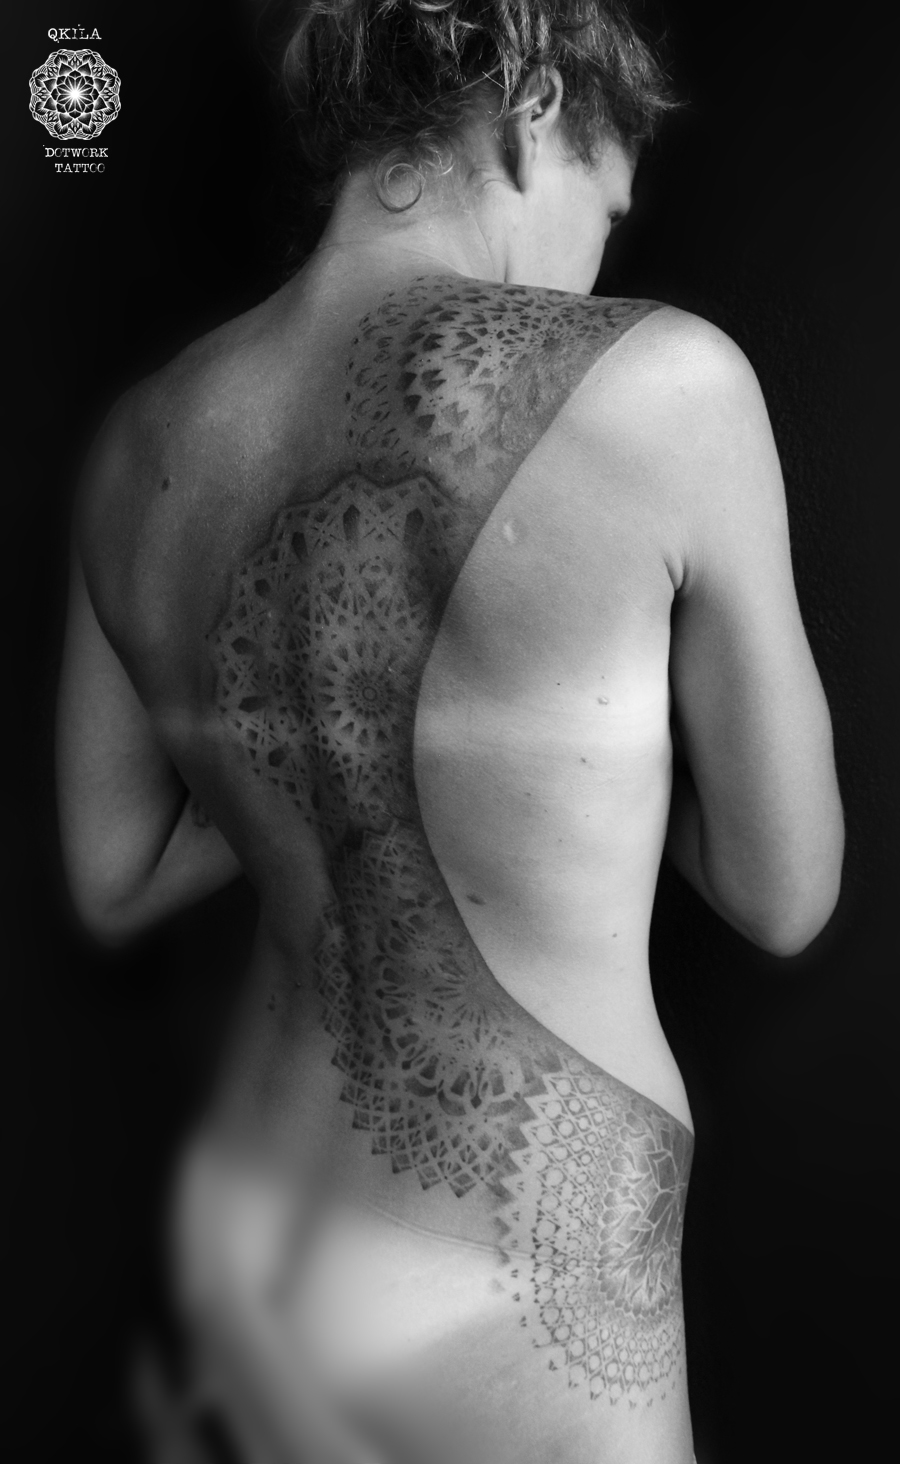 girl  with tattoo, dotwork, ink, qkila, nimes, tatouage, tattoo, les tatoués anonymes, mandala, back tattoo